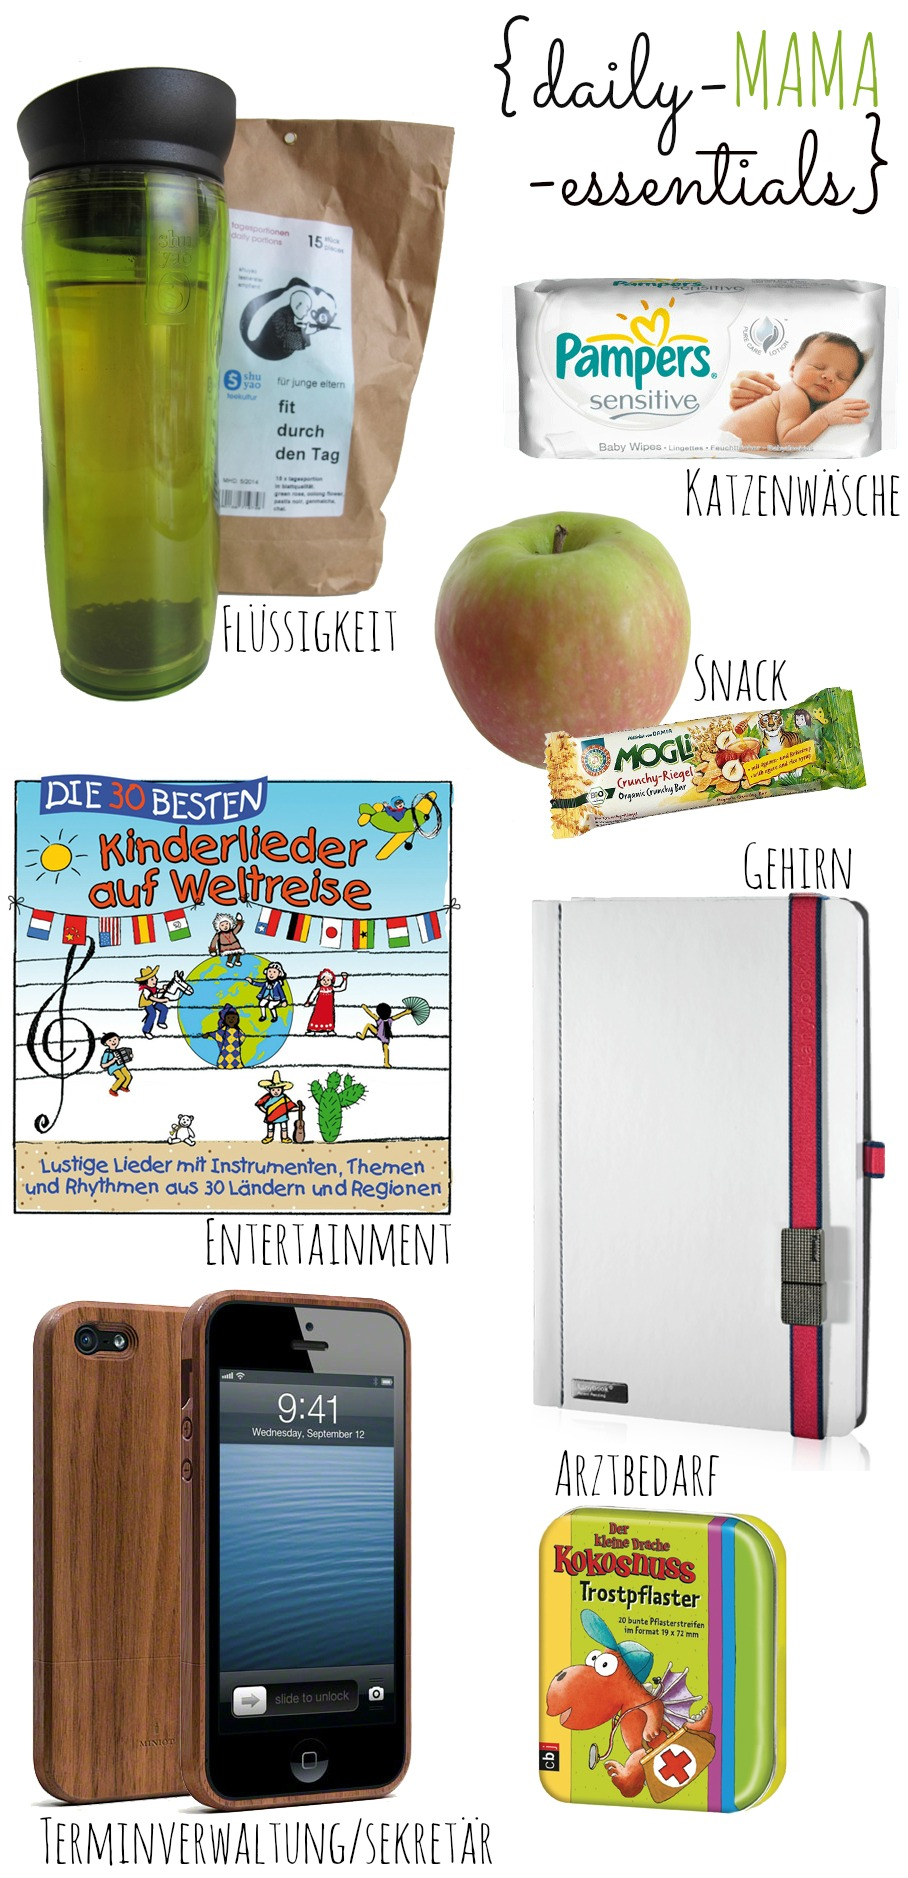 (Deutsch) Mama unterwegs : {daily-MAMA-essentials}